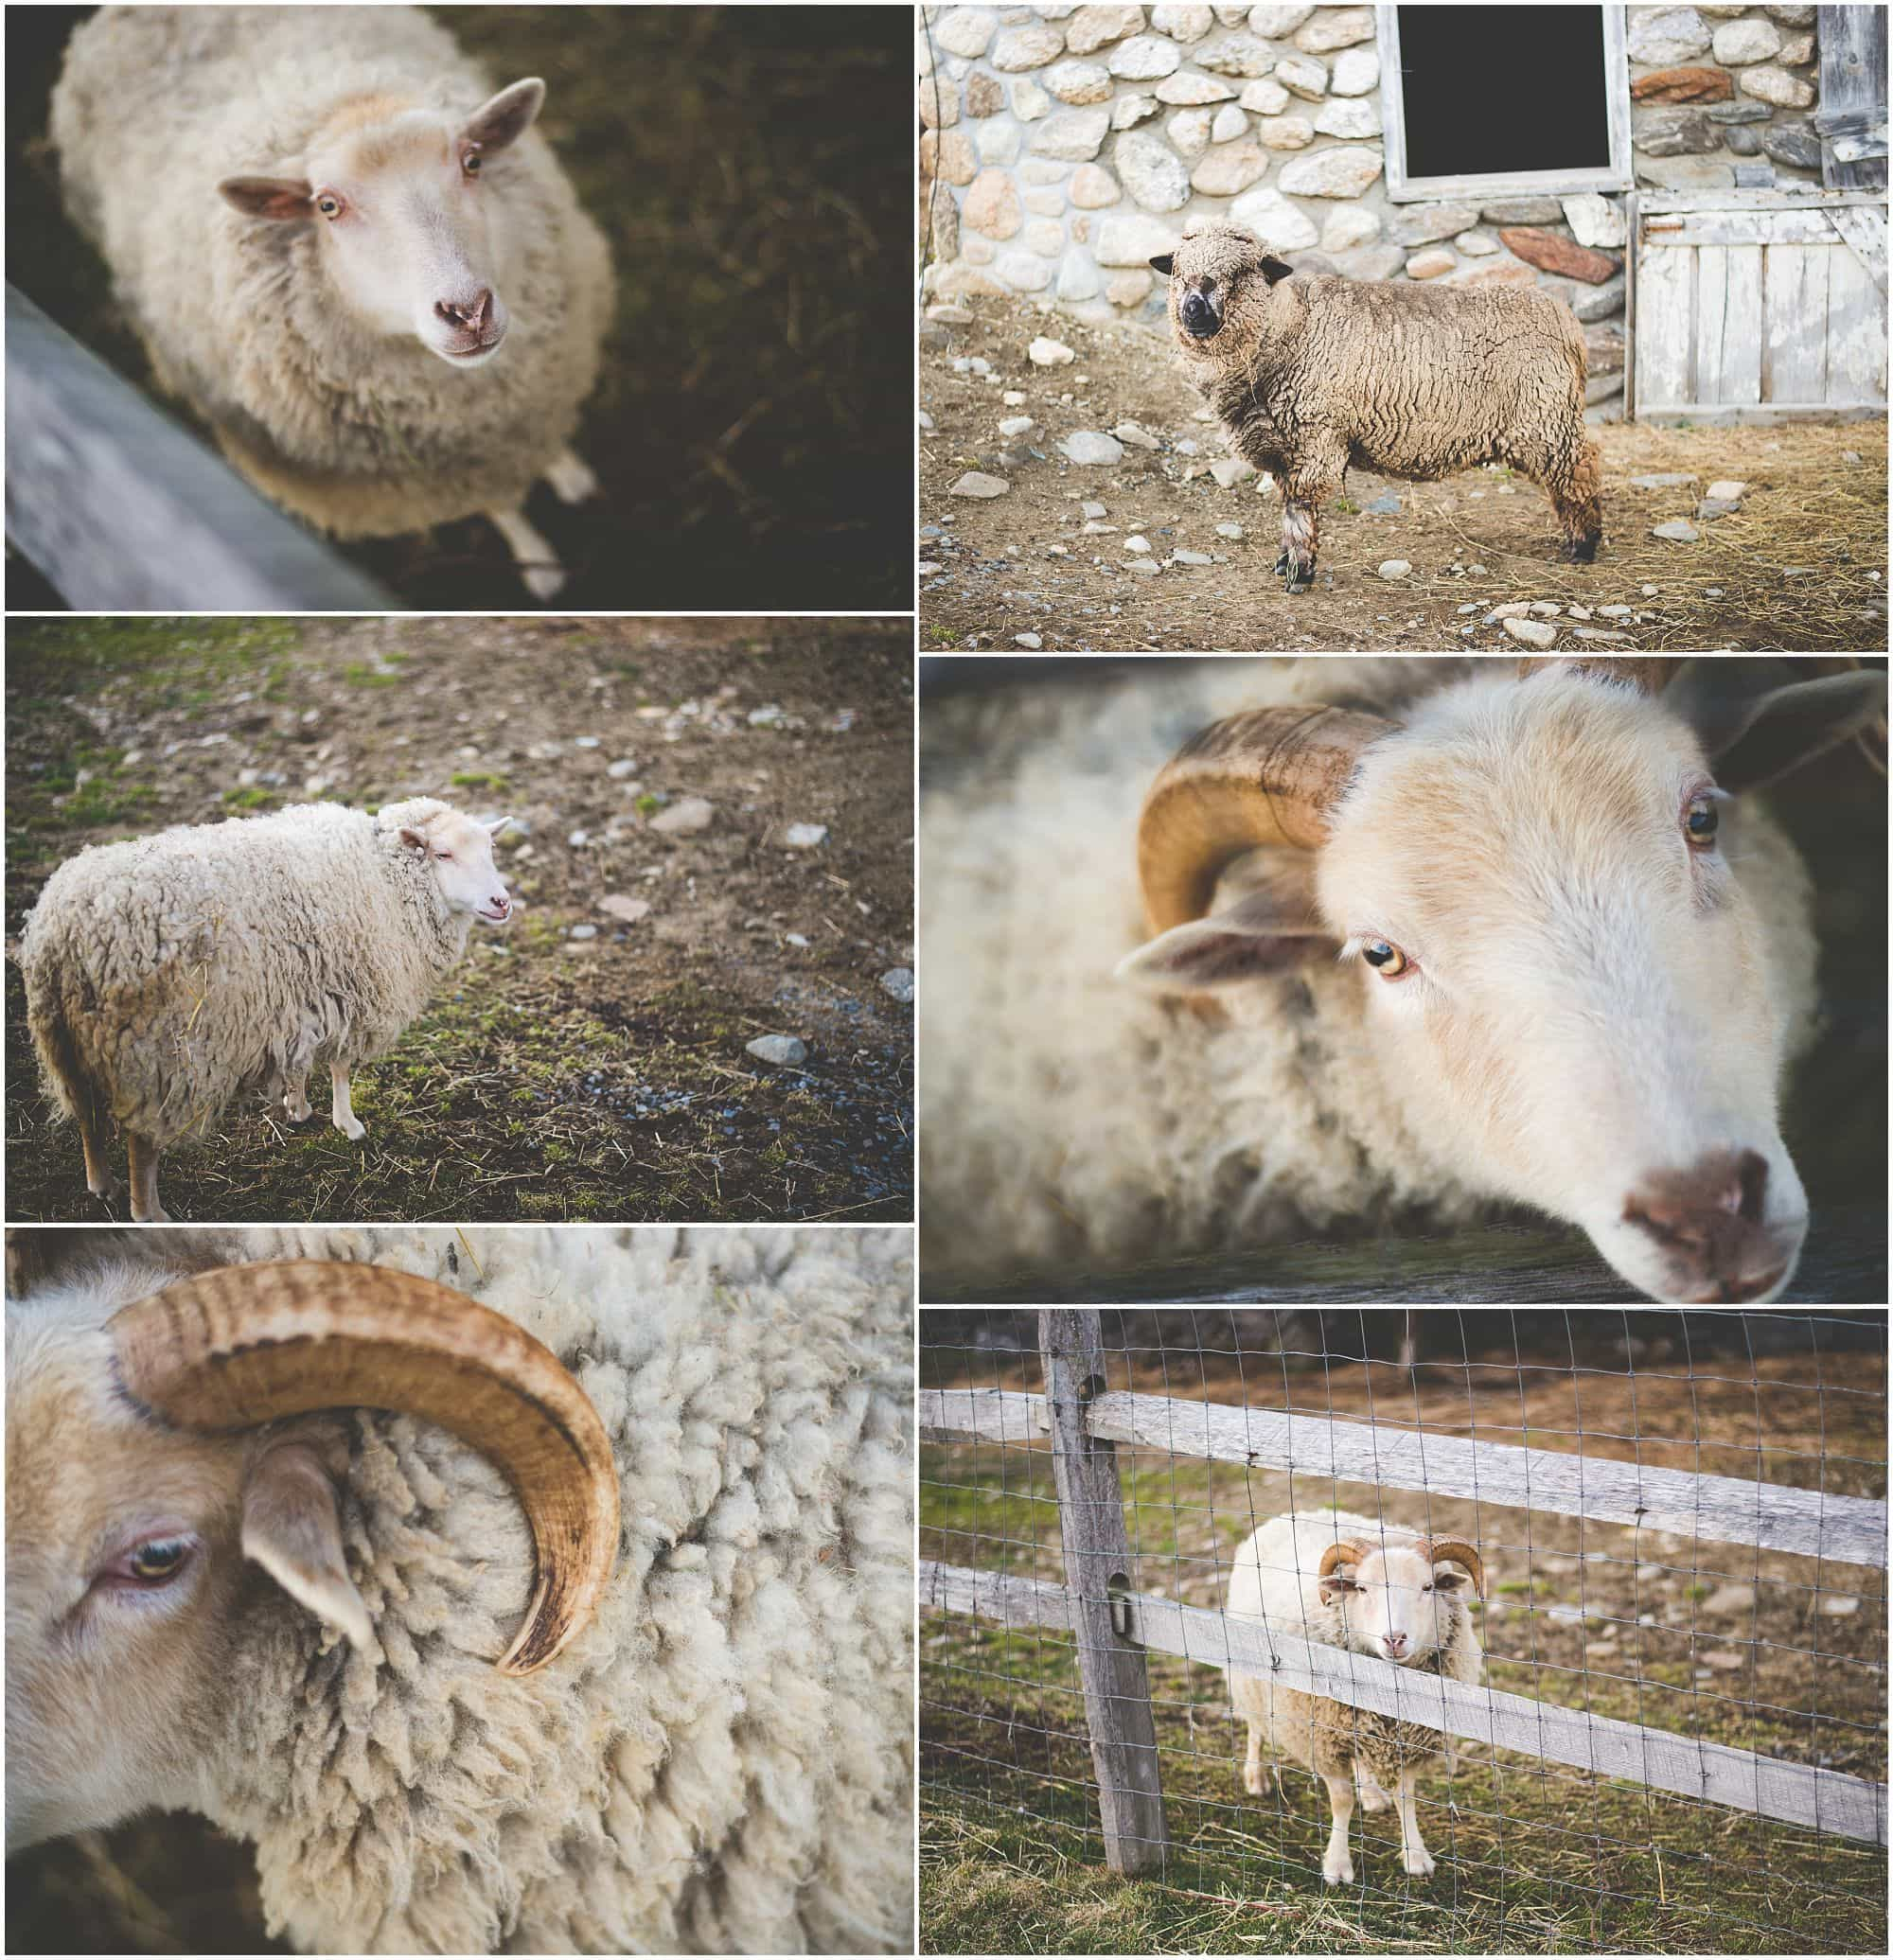 Two sheep near a stone wall and wooden fence